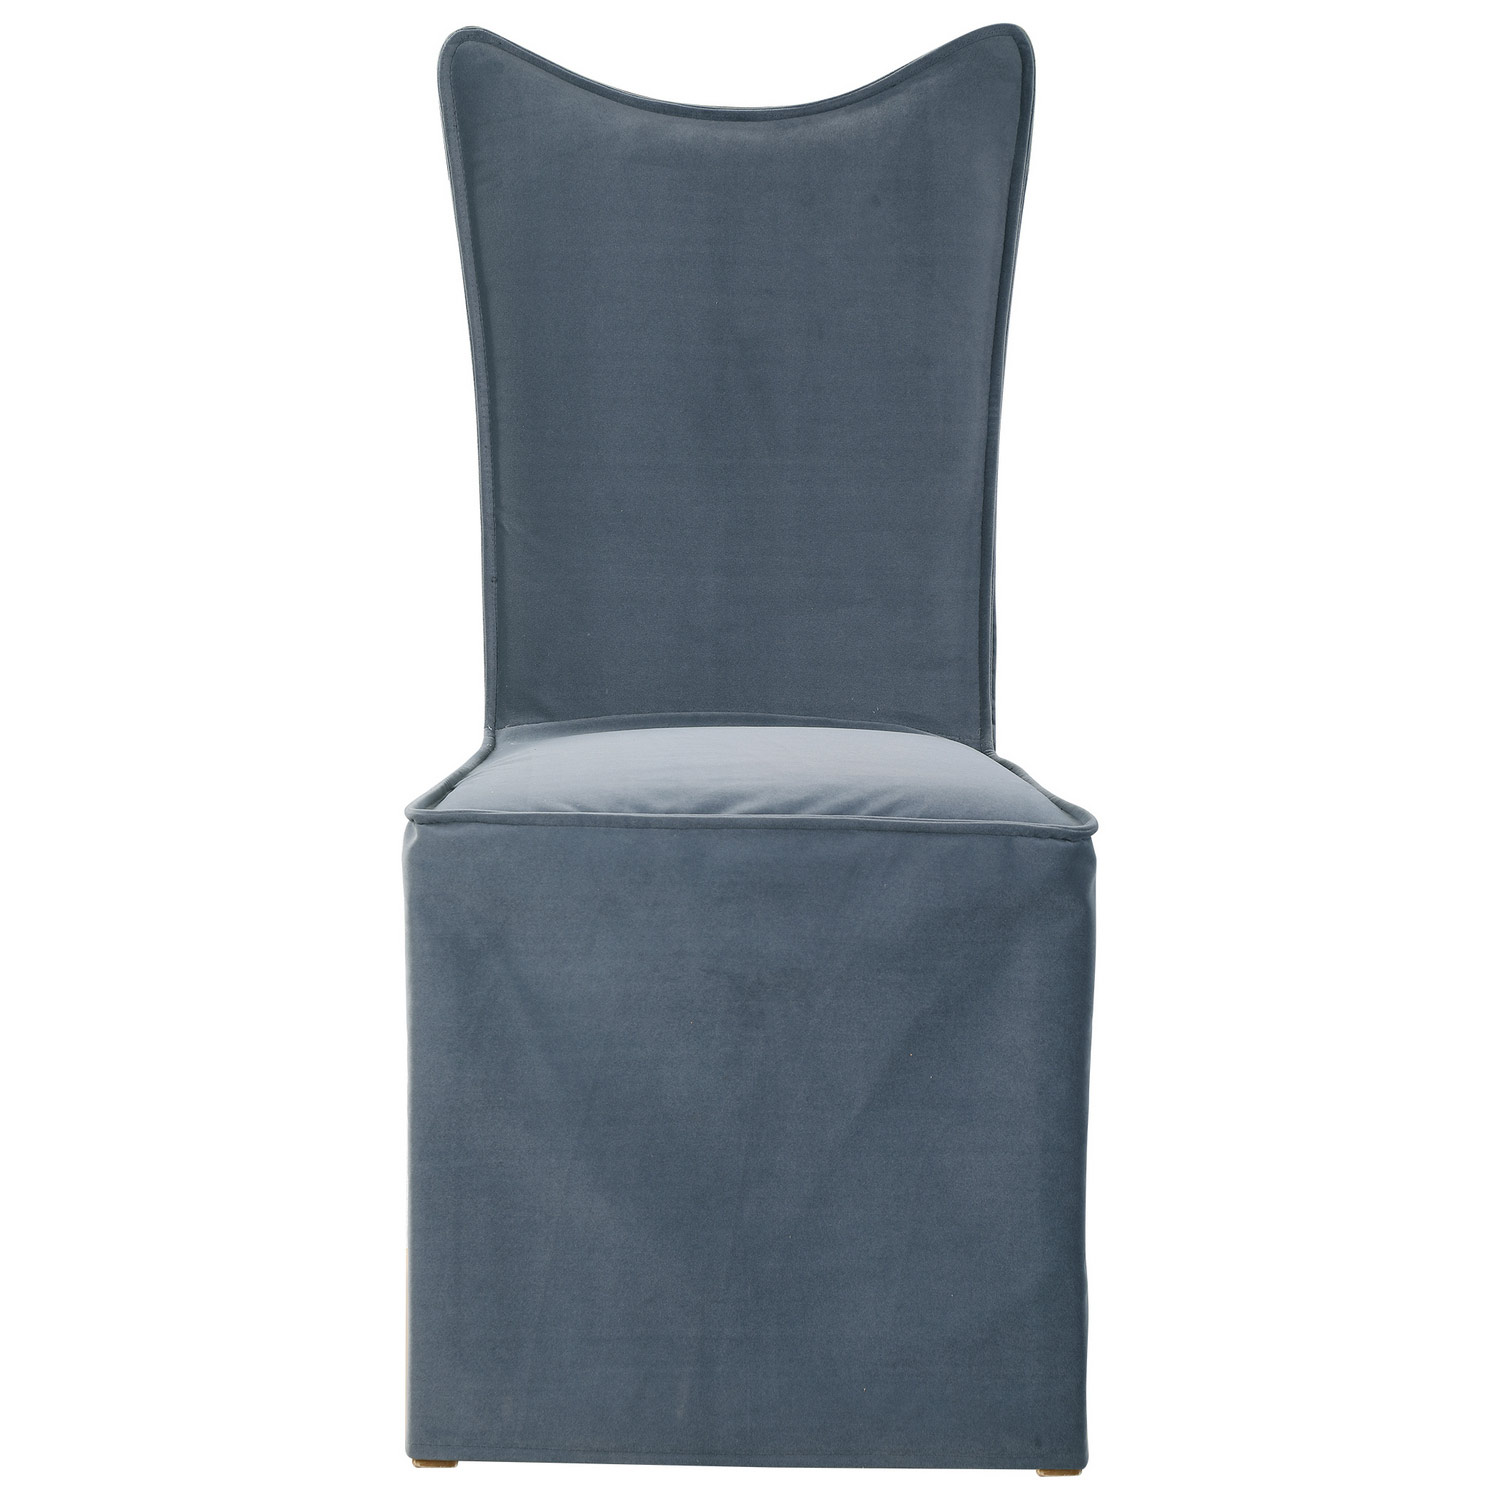 Uttermost Delroy Armless Chair - Set of 2 - Gray